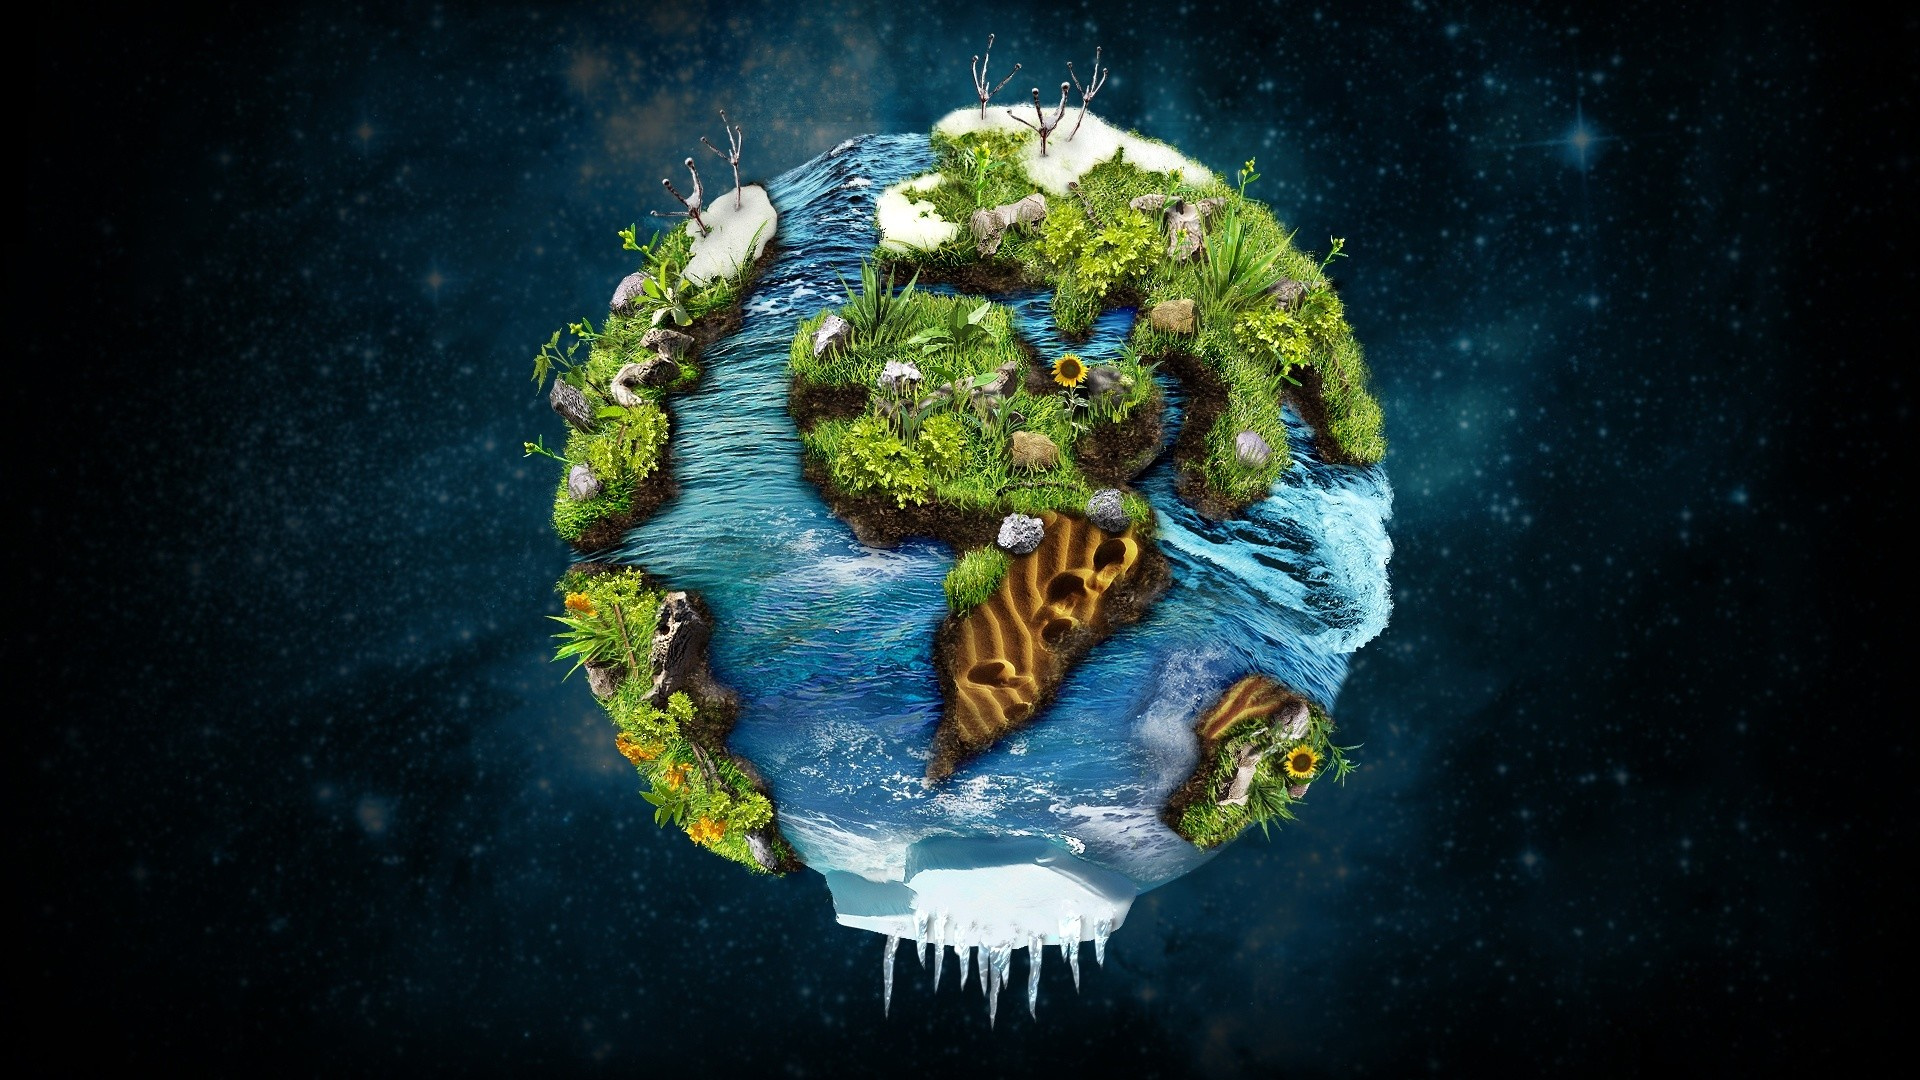 Future Planet Earth Wallpapers